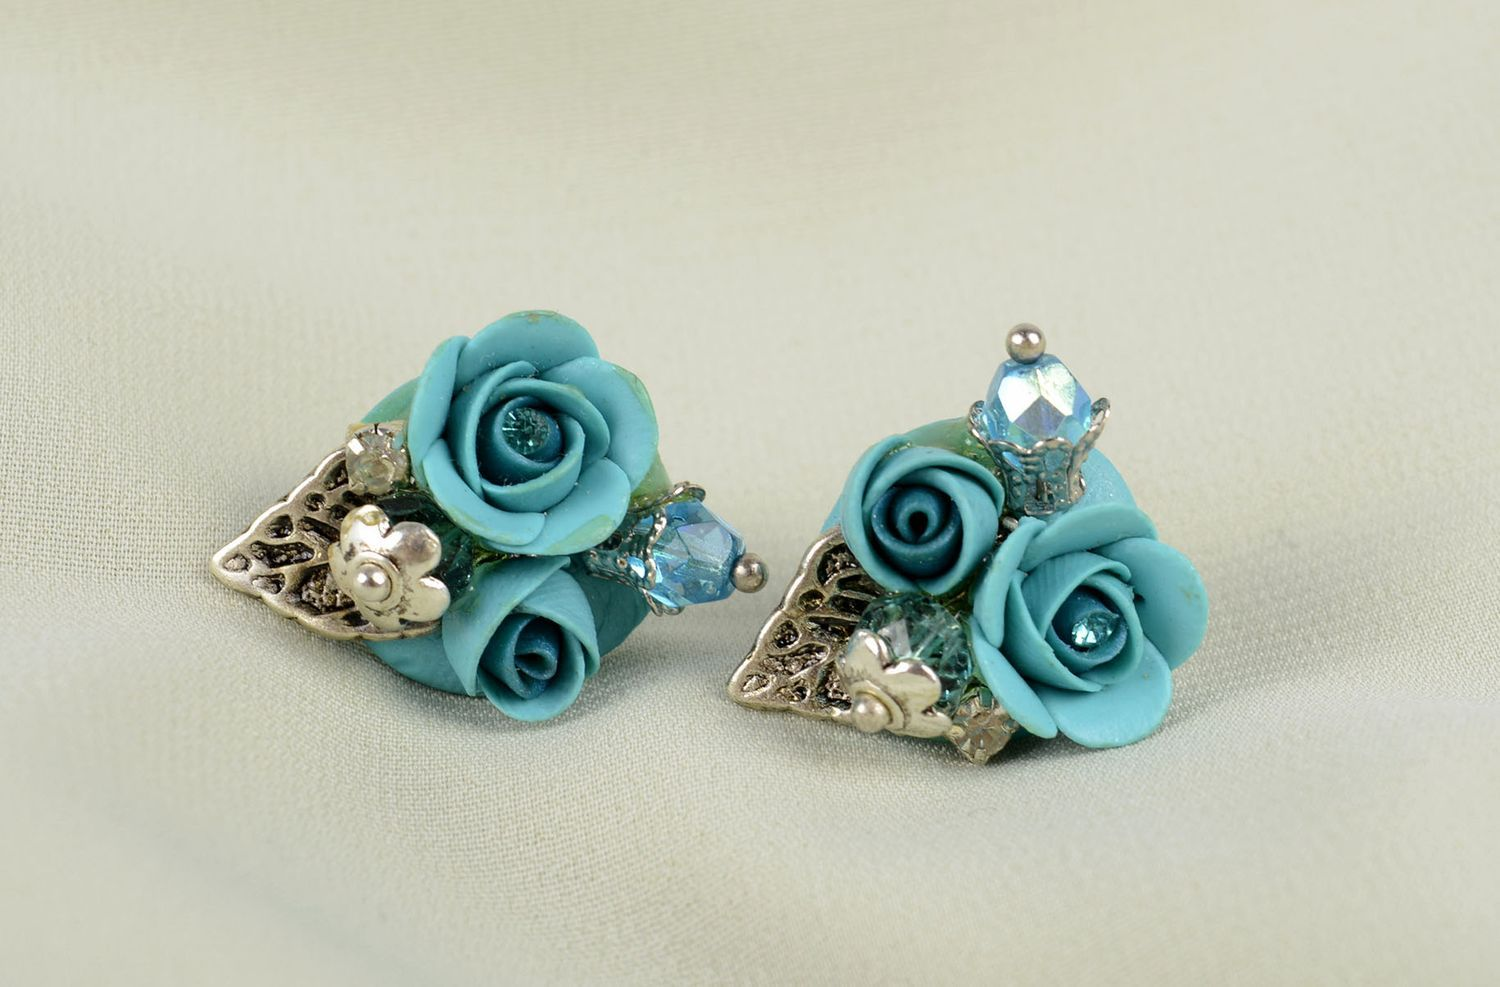 Handmade stud earrings polymer clay accessories plastic earrings with flowers photo 5